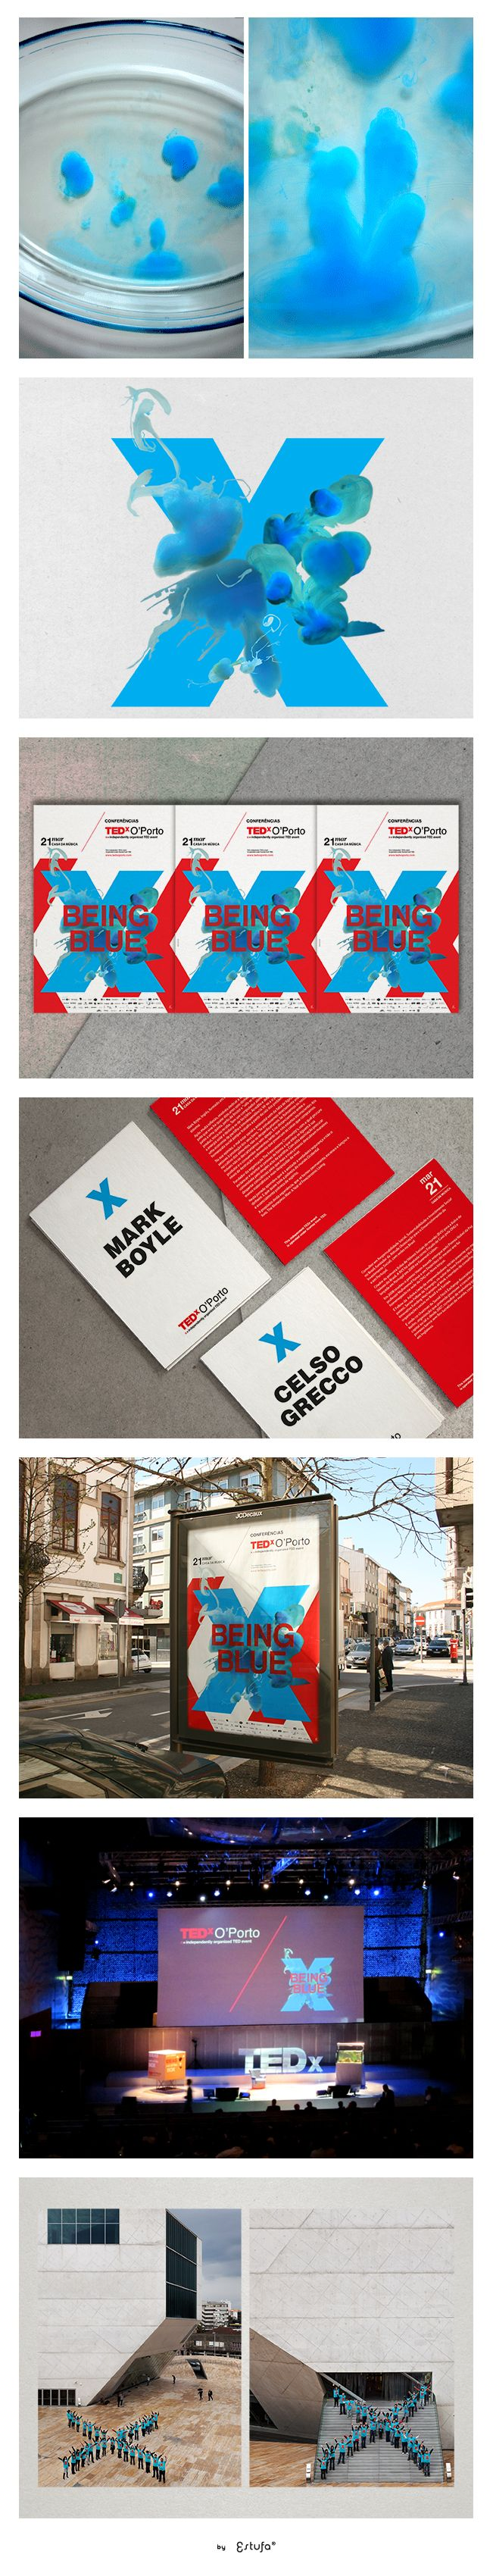 "I D E N T I T Y — Graphic identity for TEDx O'Porto 2011 at Casa da Música with the theme ""being blue""."